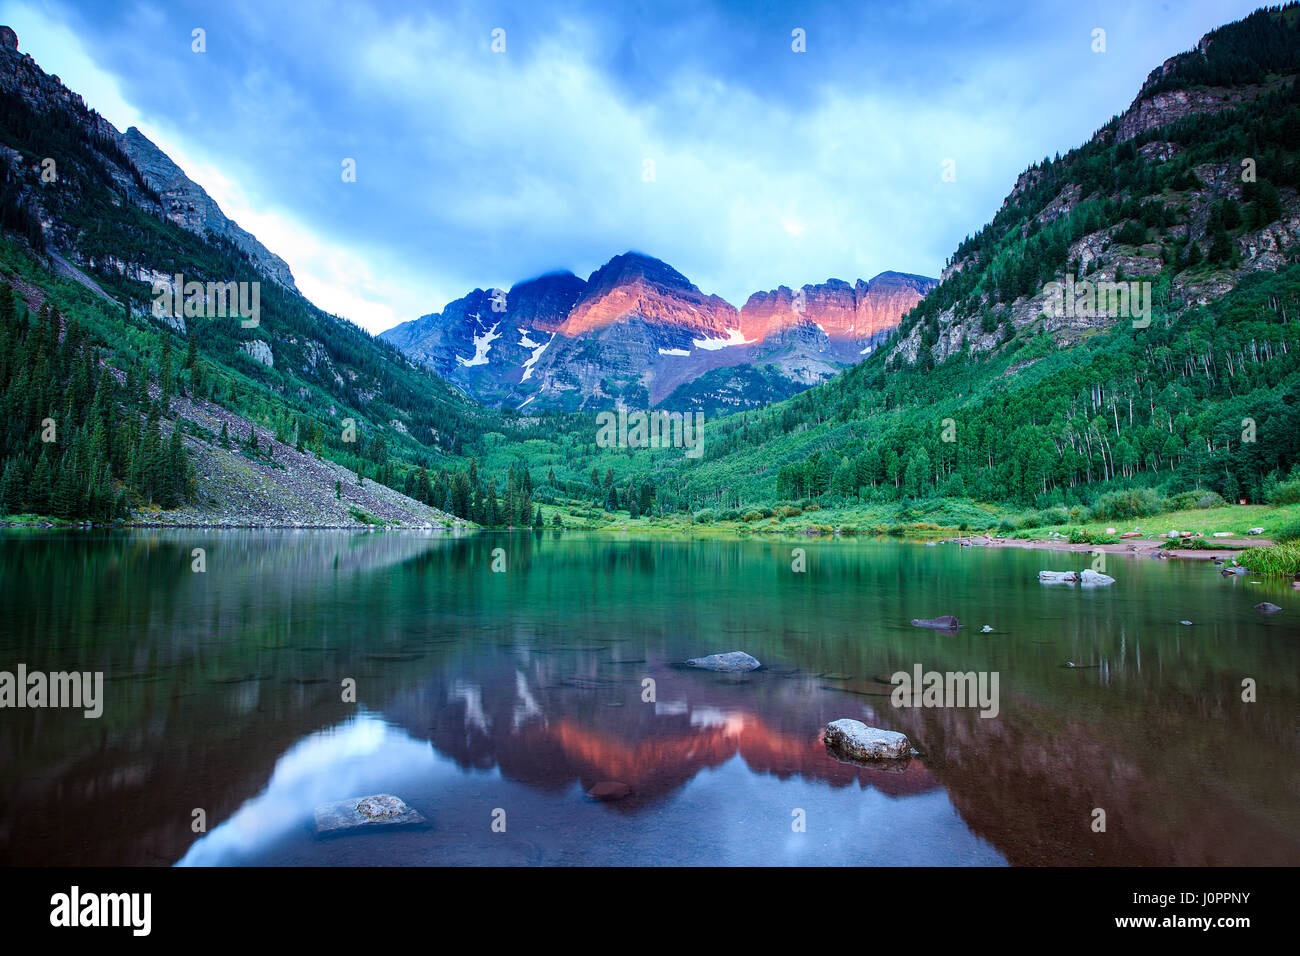 Maroon bells at sunrise in aspen colorado - Stock Image